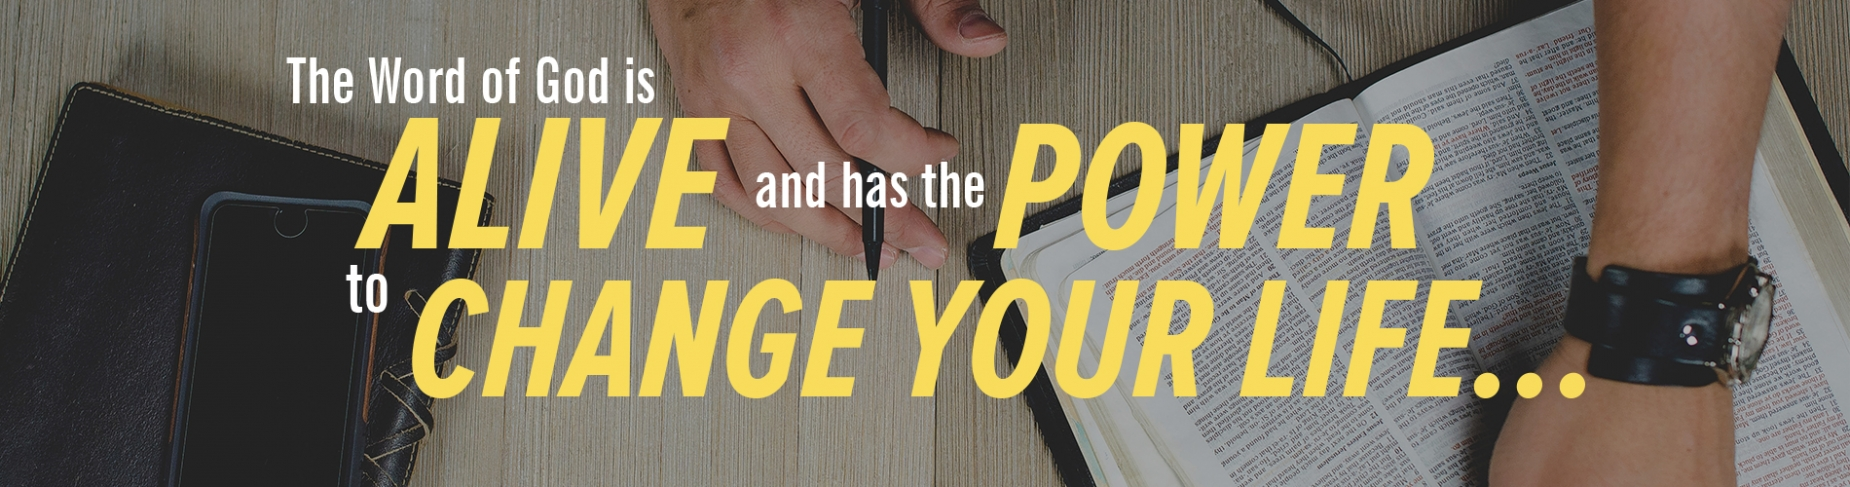 The Word of God is alive and has the power to change your life